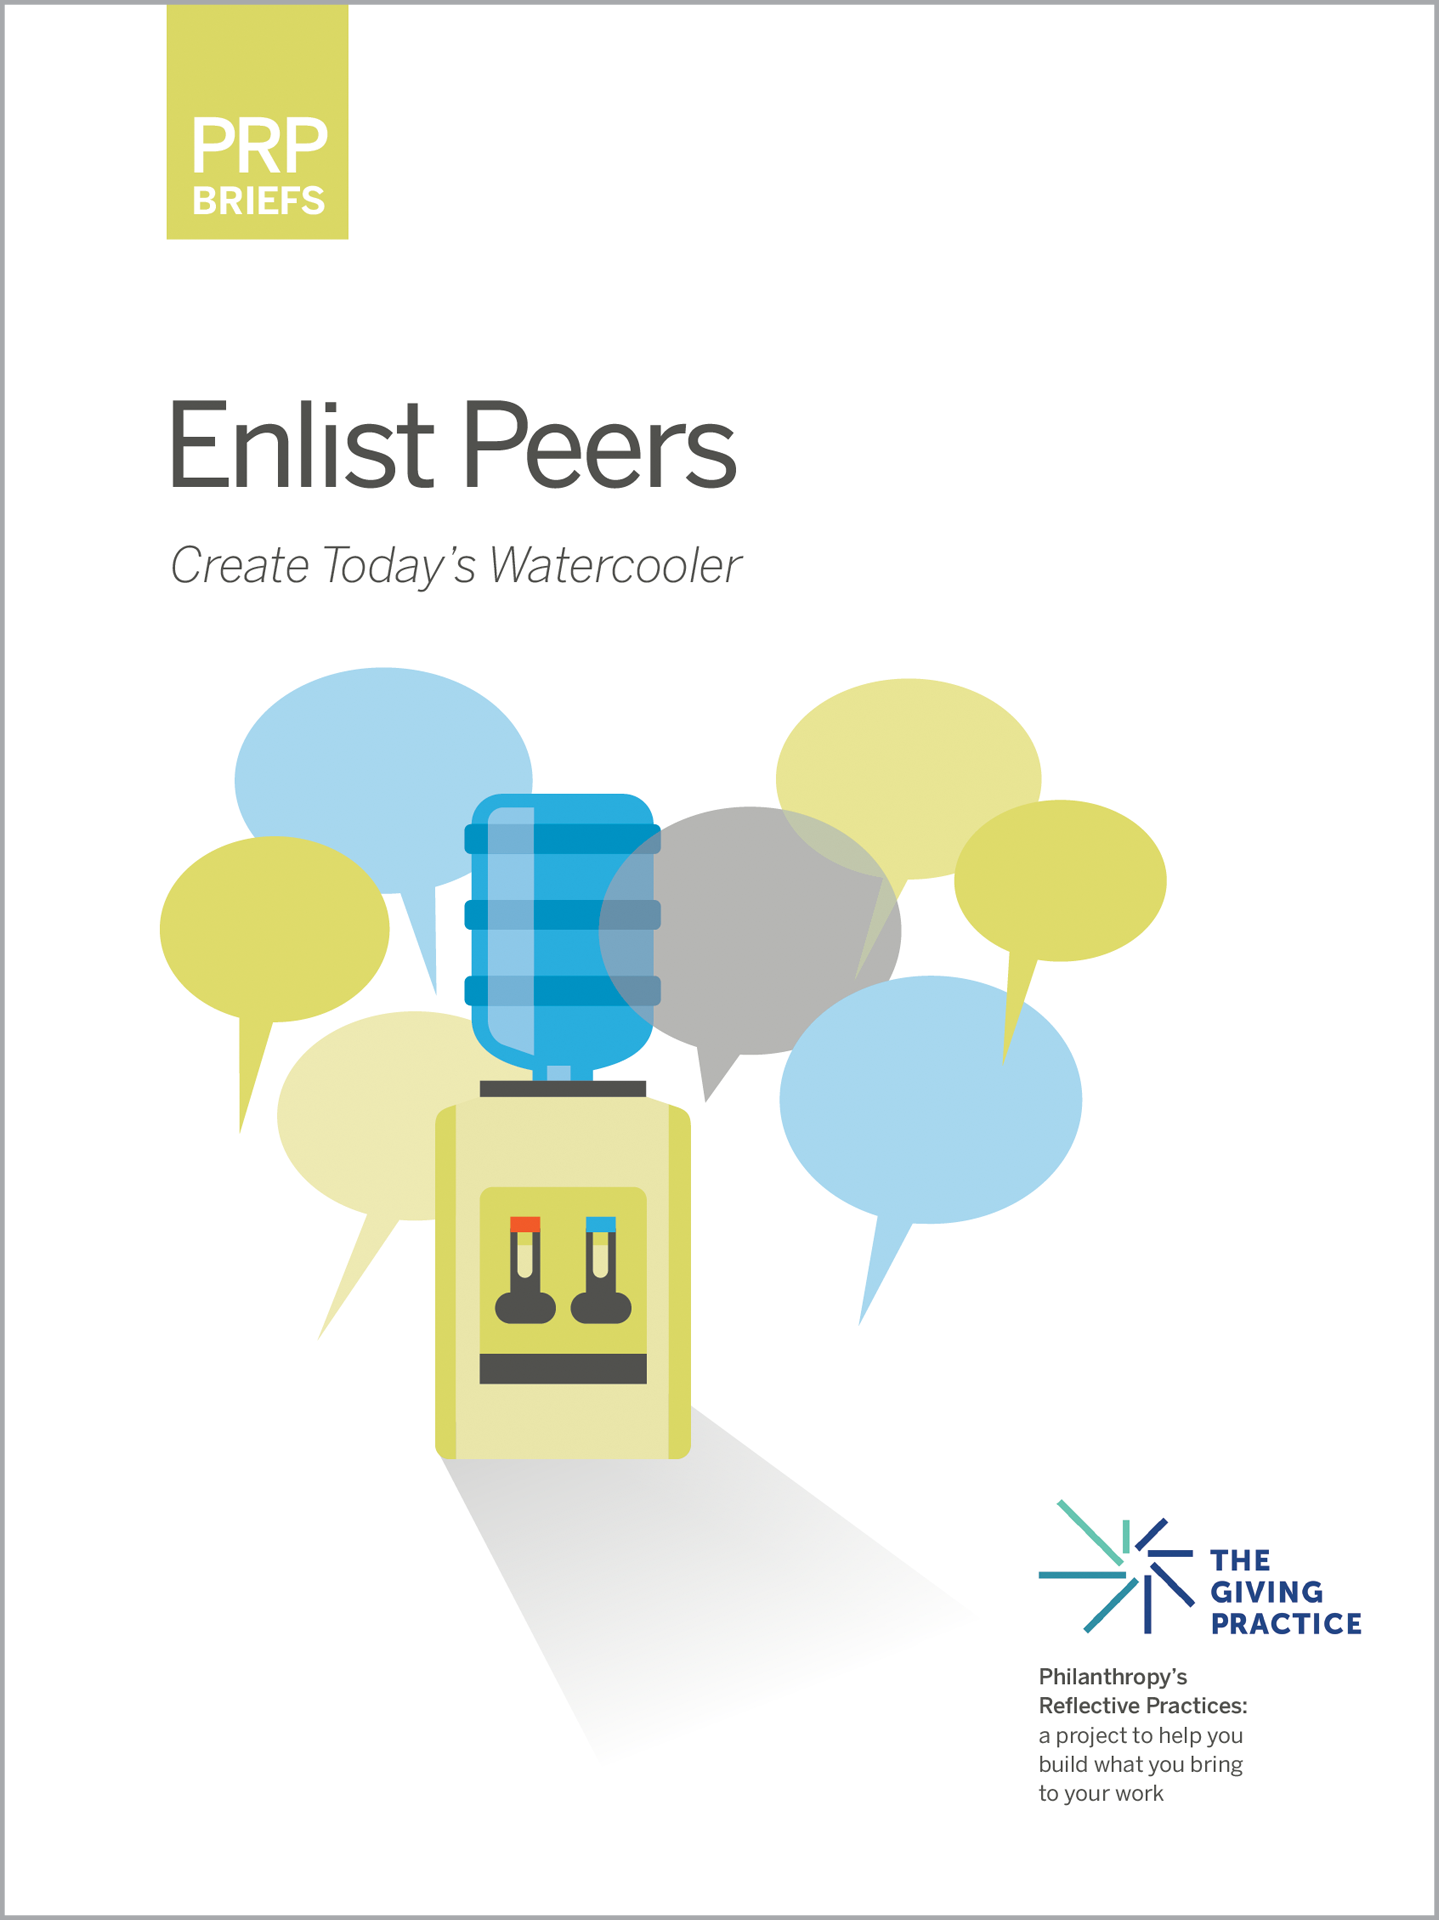 Thumbnail of cover, titled PRP Brief: Enlist Peers